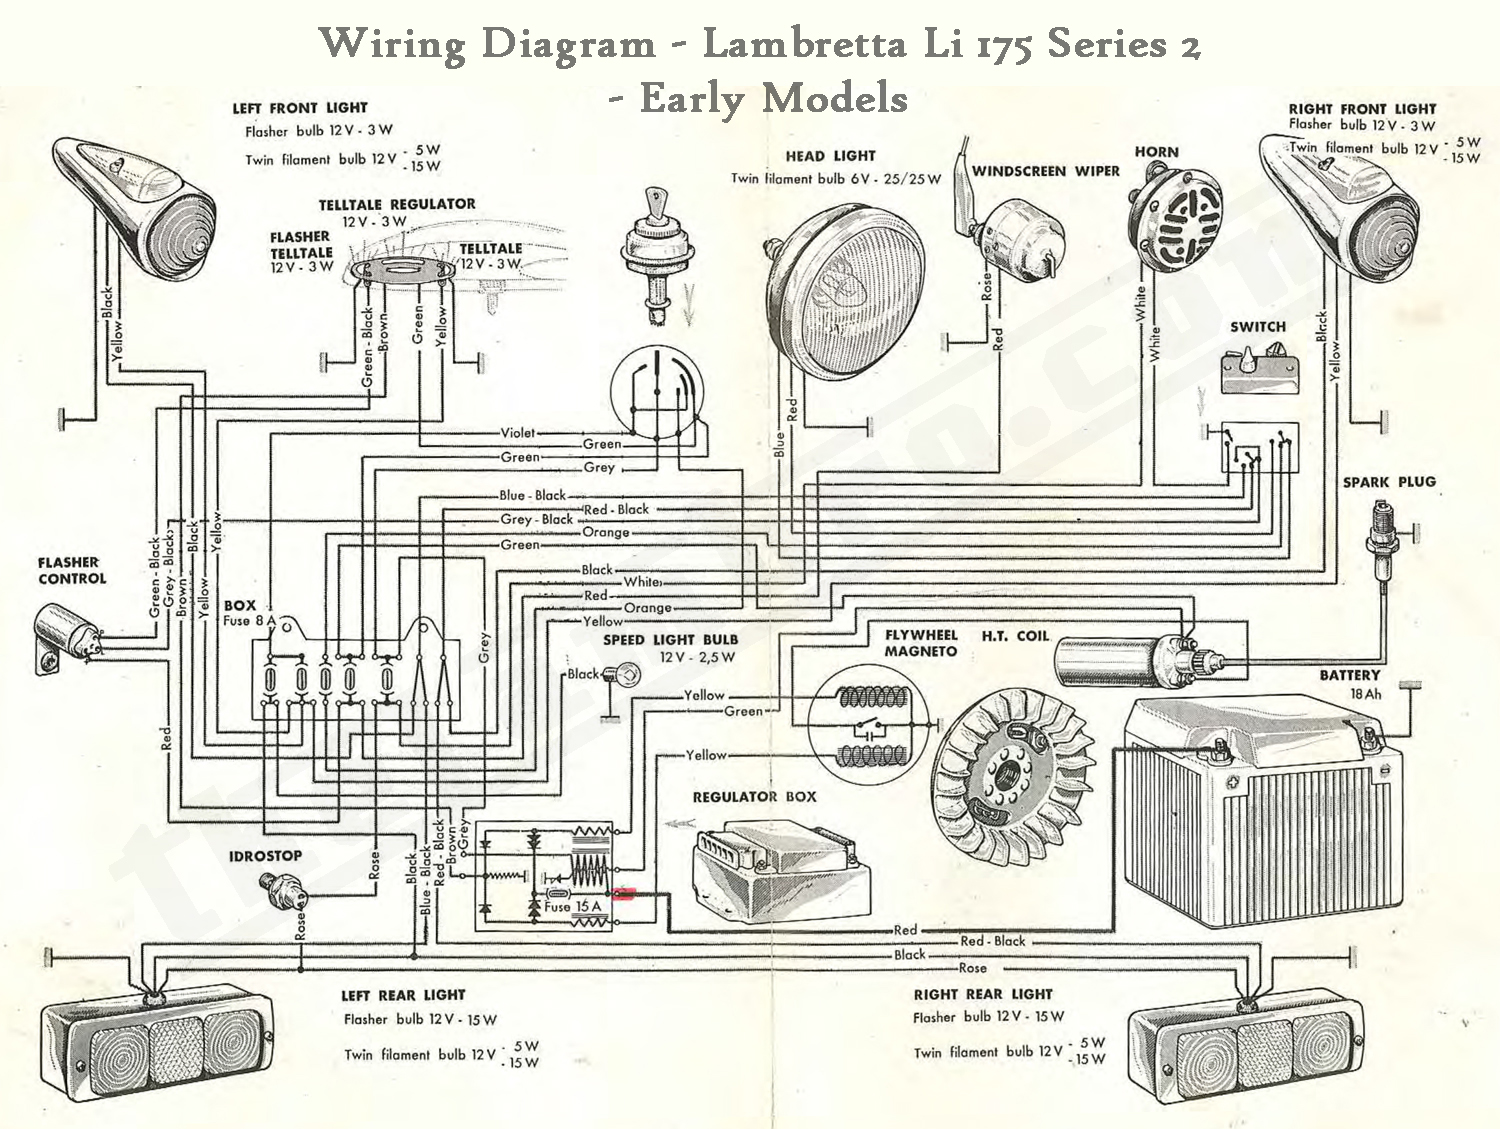 Lambretta Light Switch Wiring Diagram 37 Images 12 Volt Headlight Thelambro Com Electrics Series2 Early 175 At